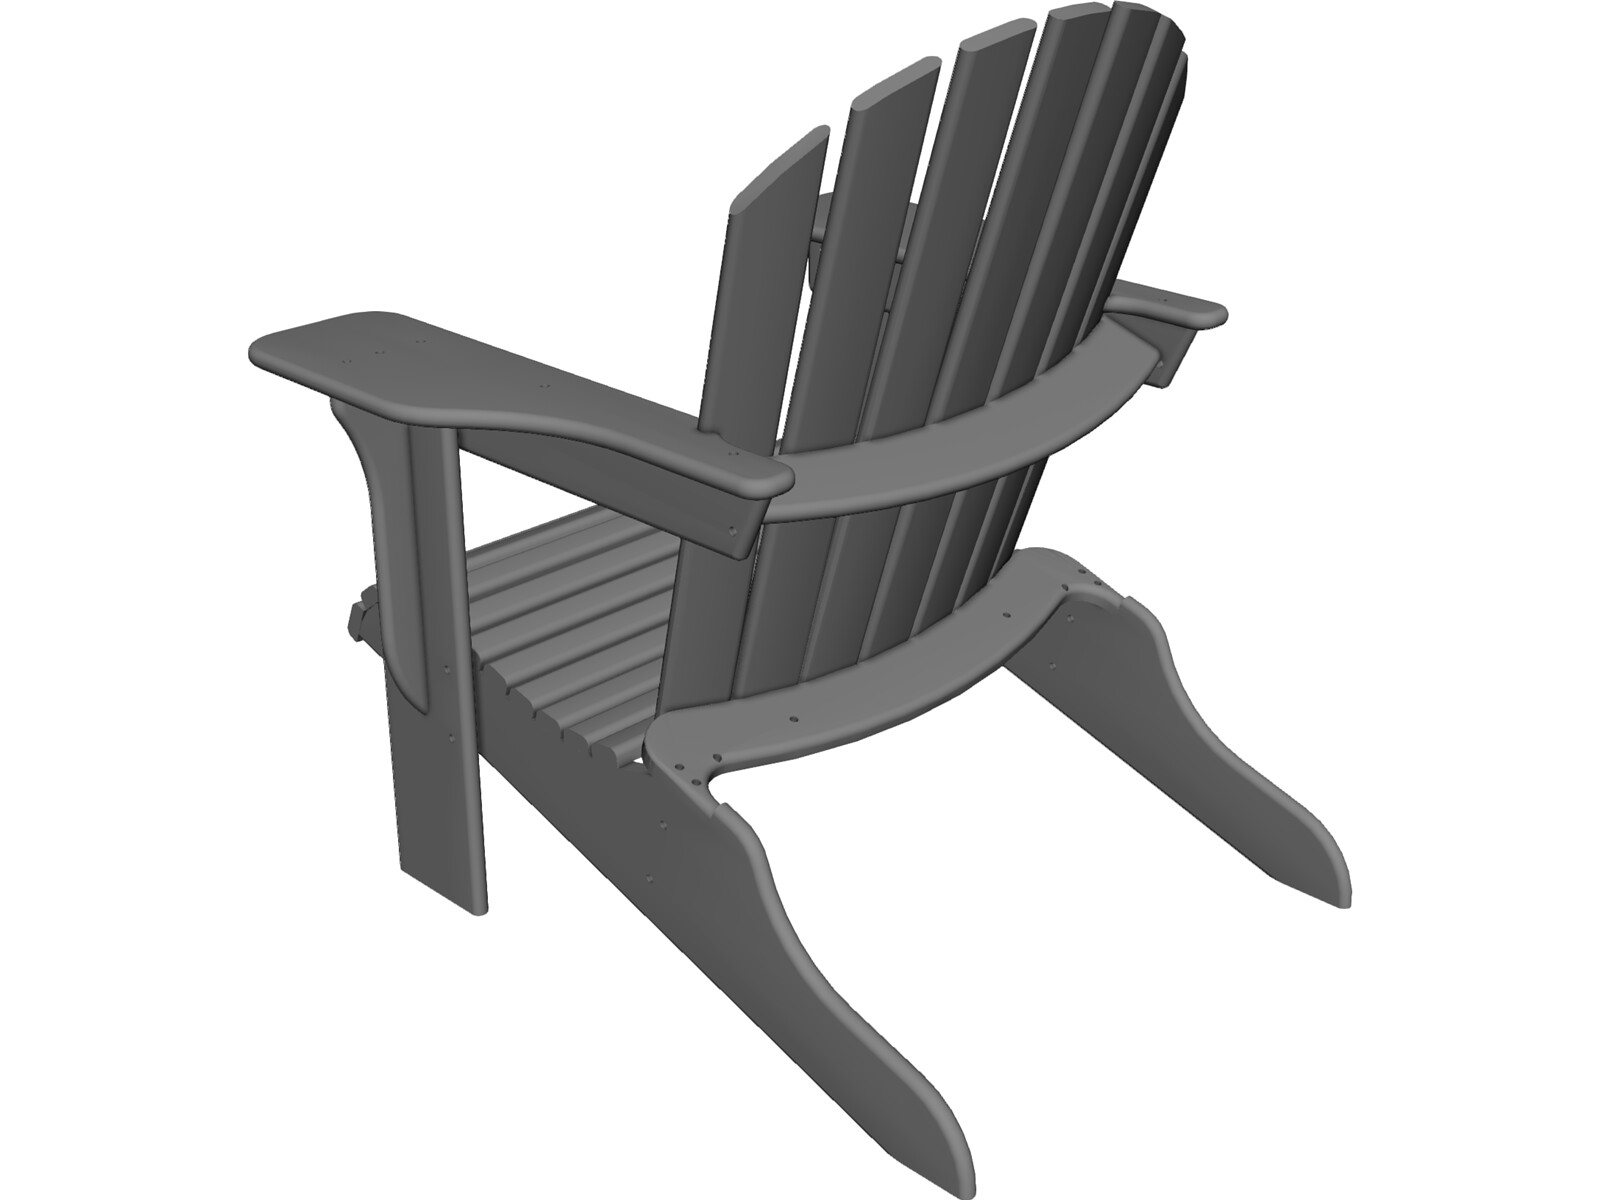 Adirondack chair 3d model 3d cad browser for Chair 3d model maya